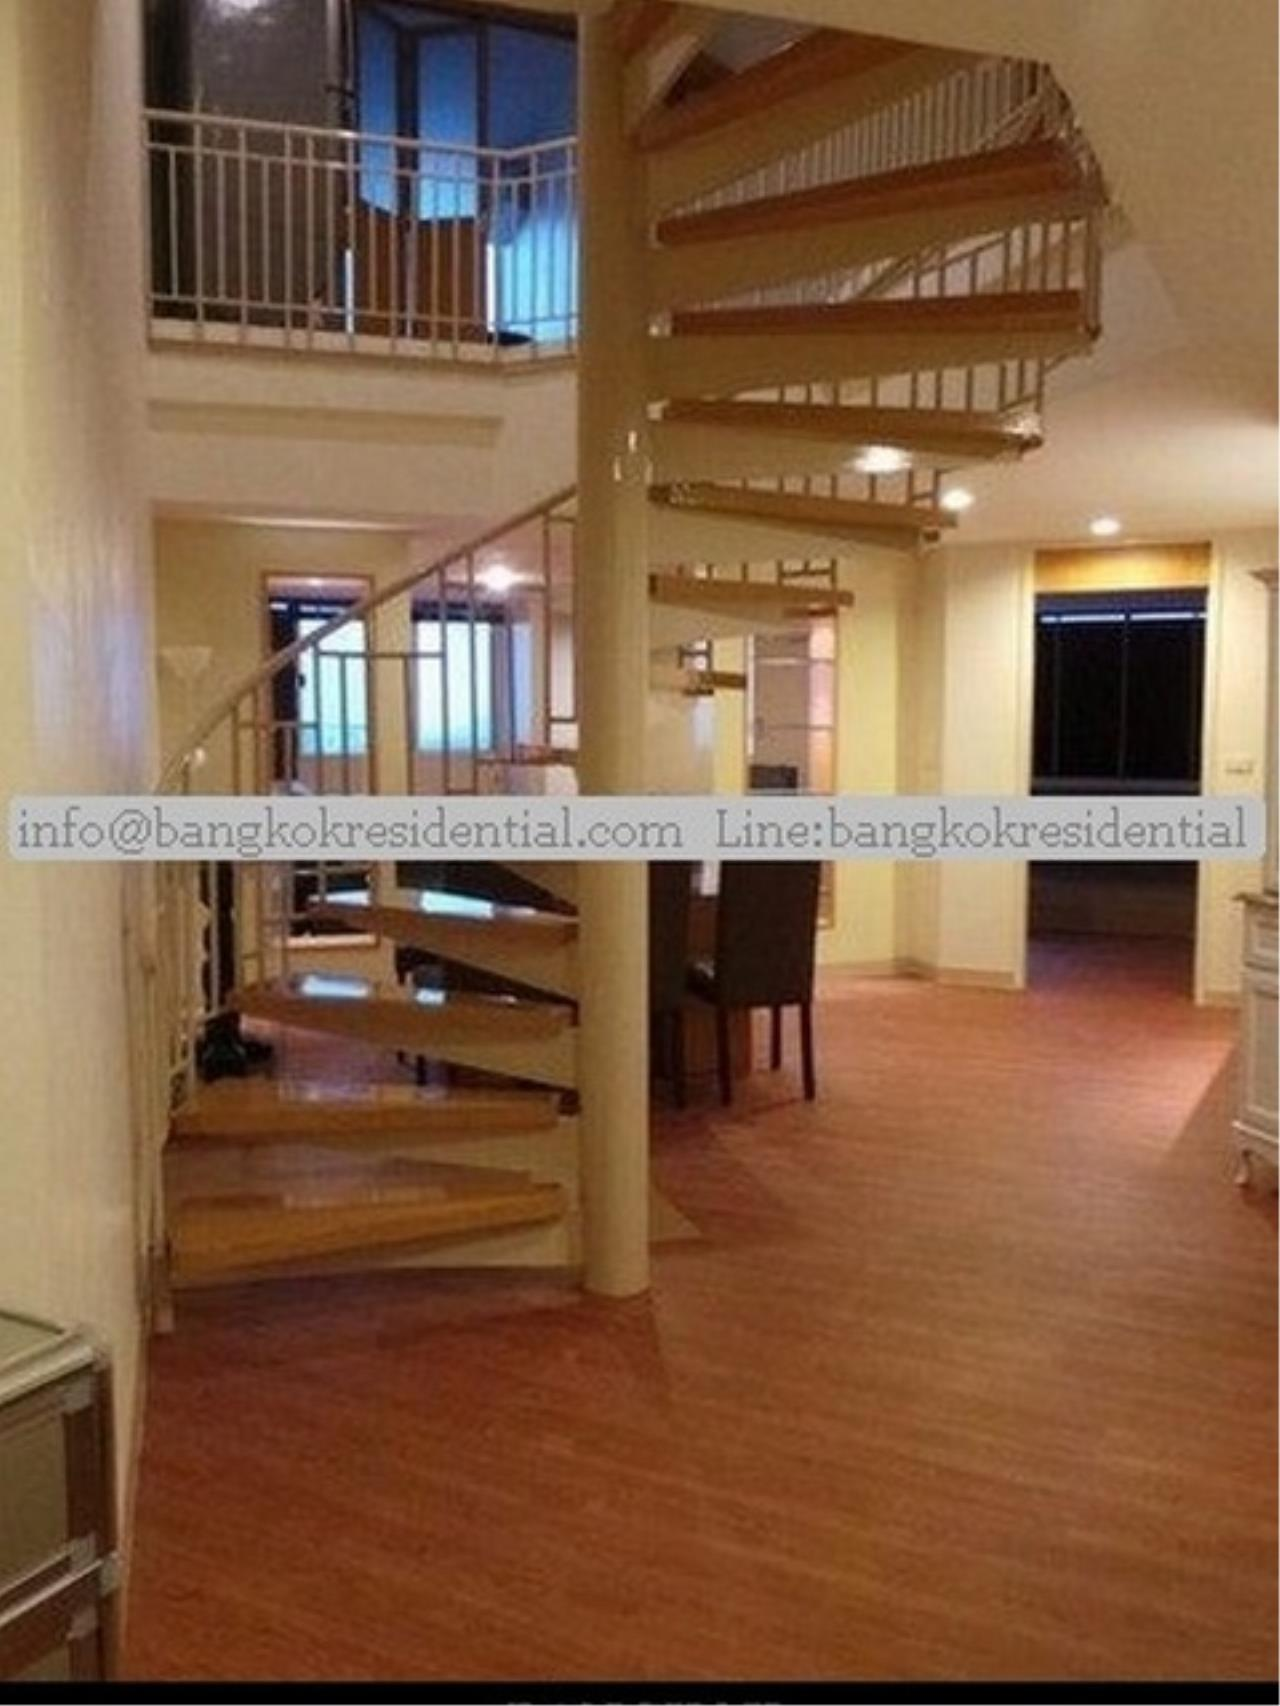 Bangkok Residential Agency's 4BR Tai Ping Tower For Sale Or Rent (BR2994CD) 10